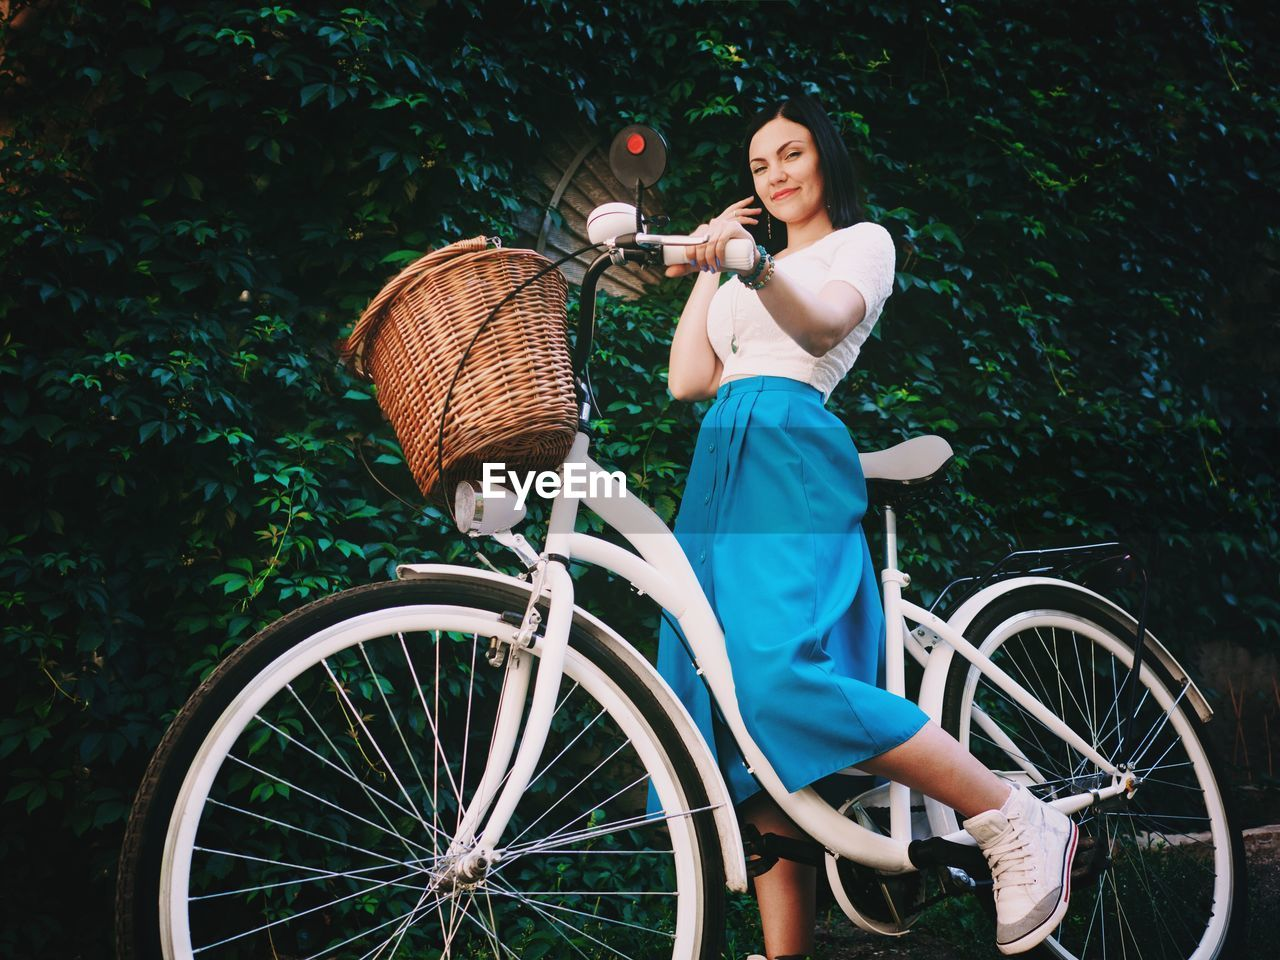 Low angle portrait of beautiful woman with bicycle against ivy